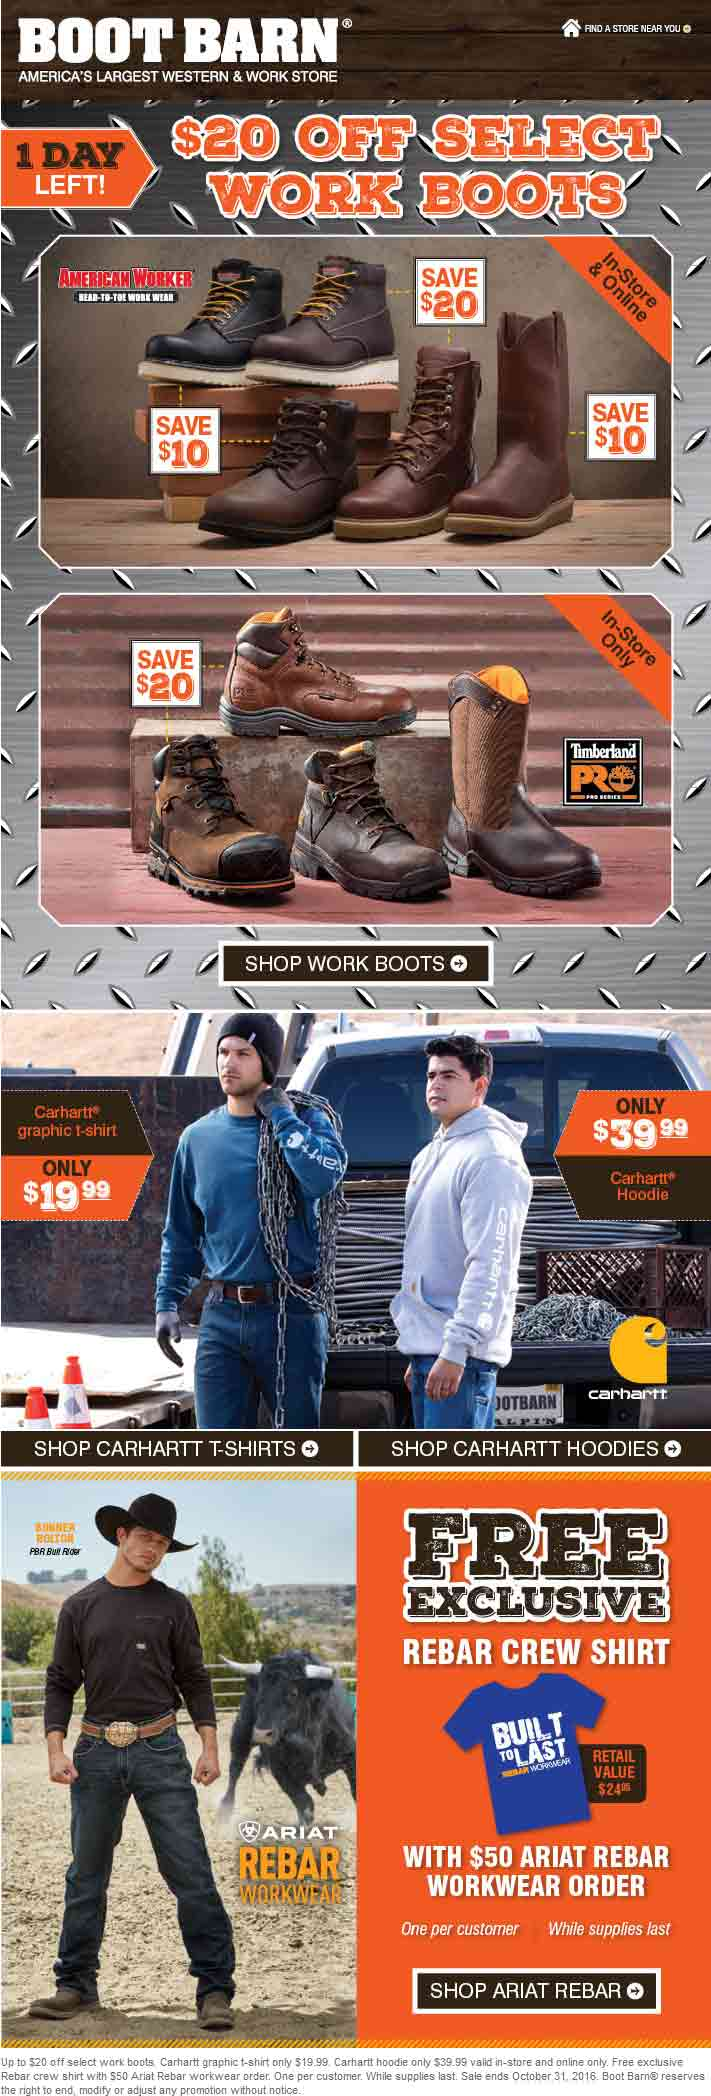 BootBarn.com Promo Coupon $20 off work boots at Boot Barn, ditto online